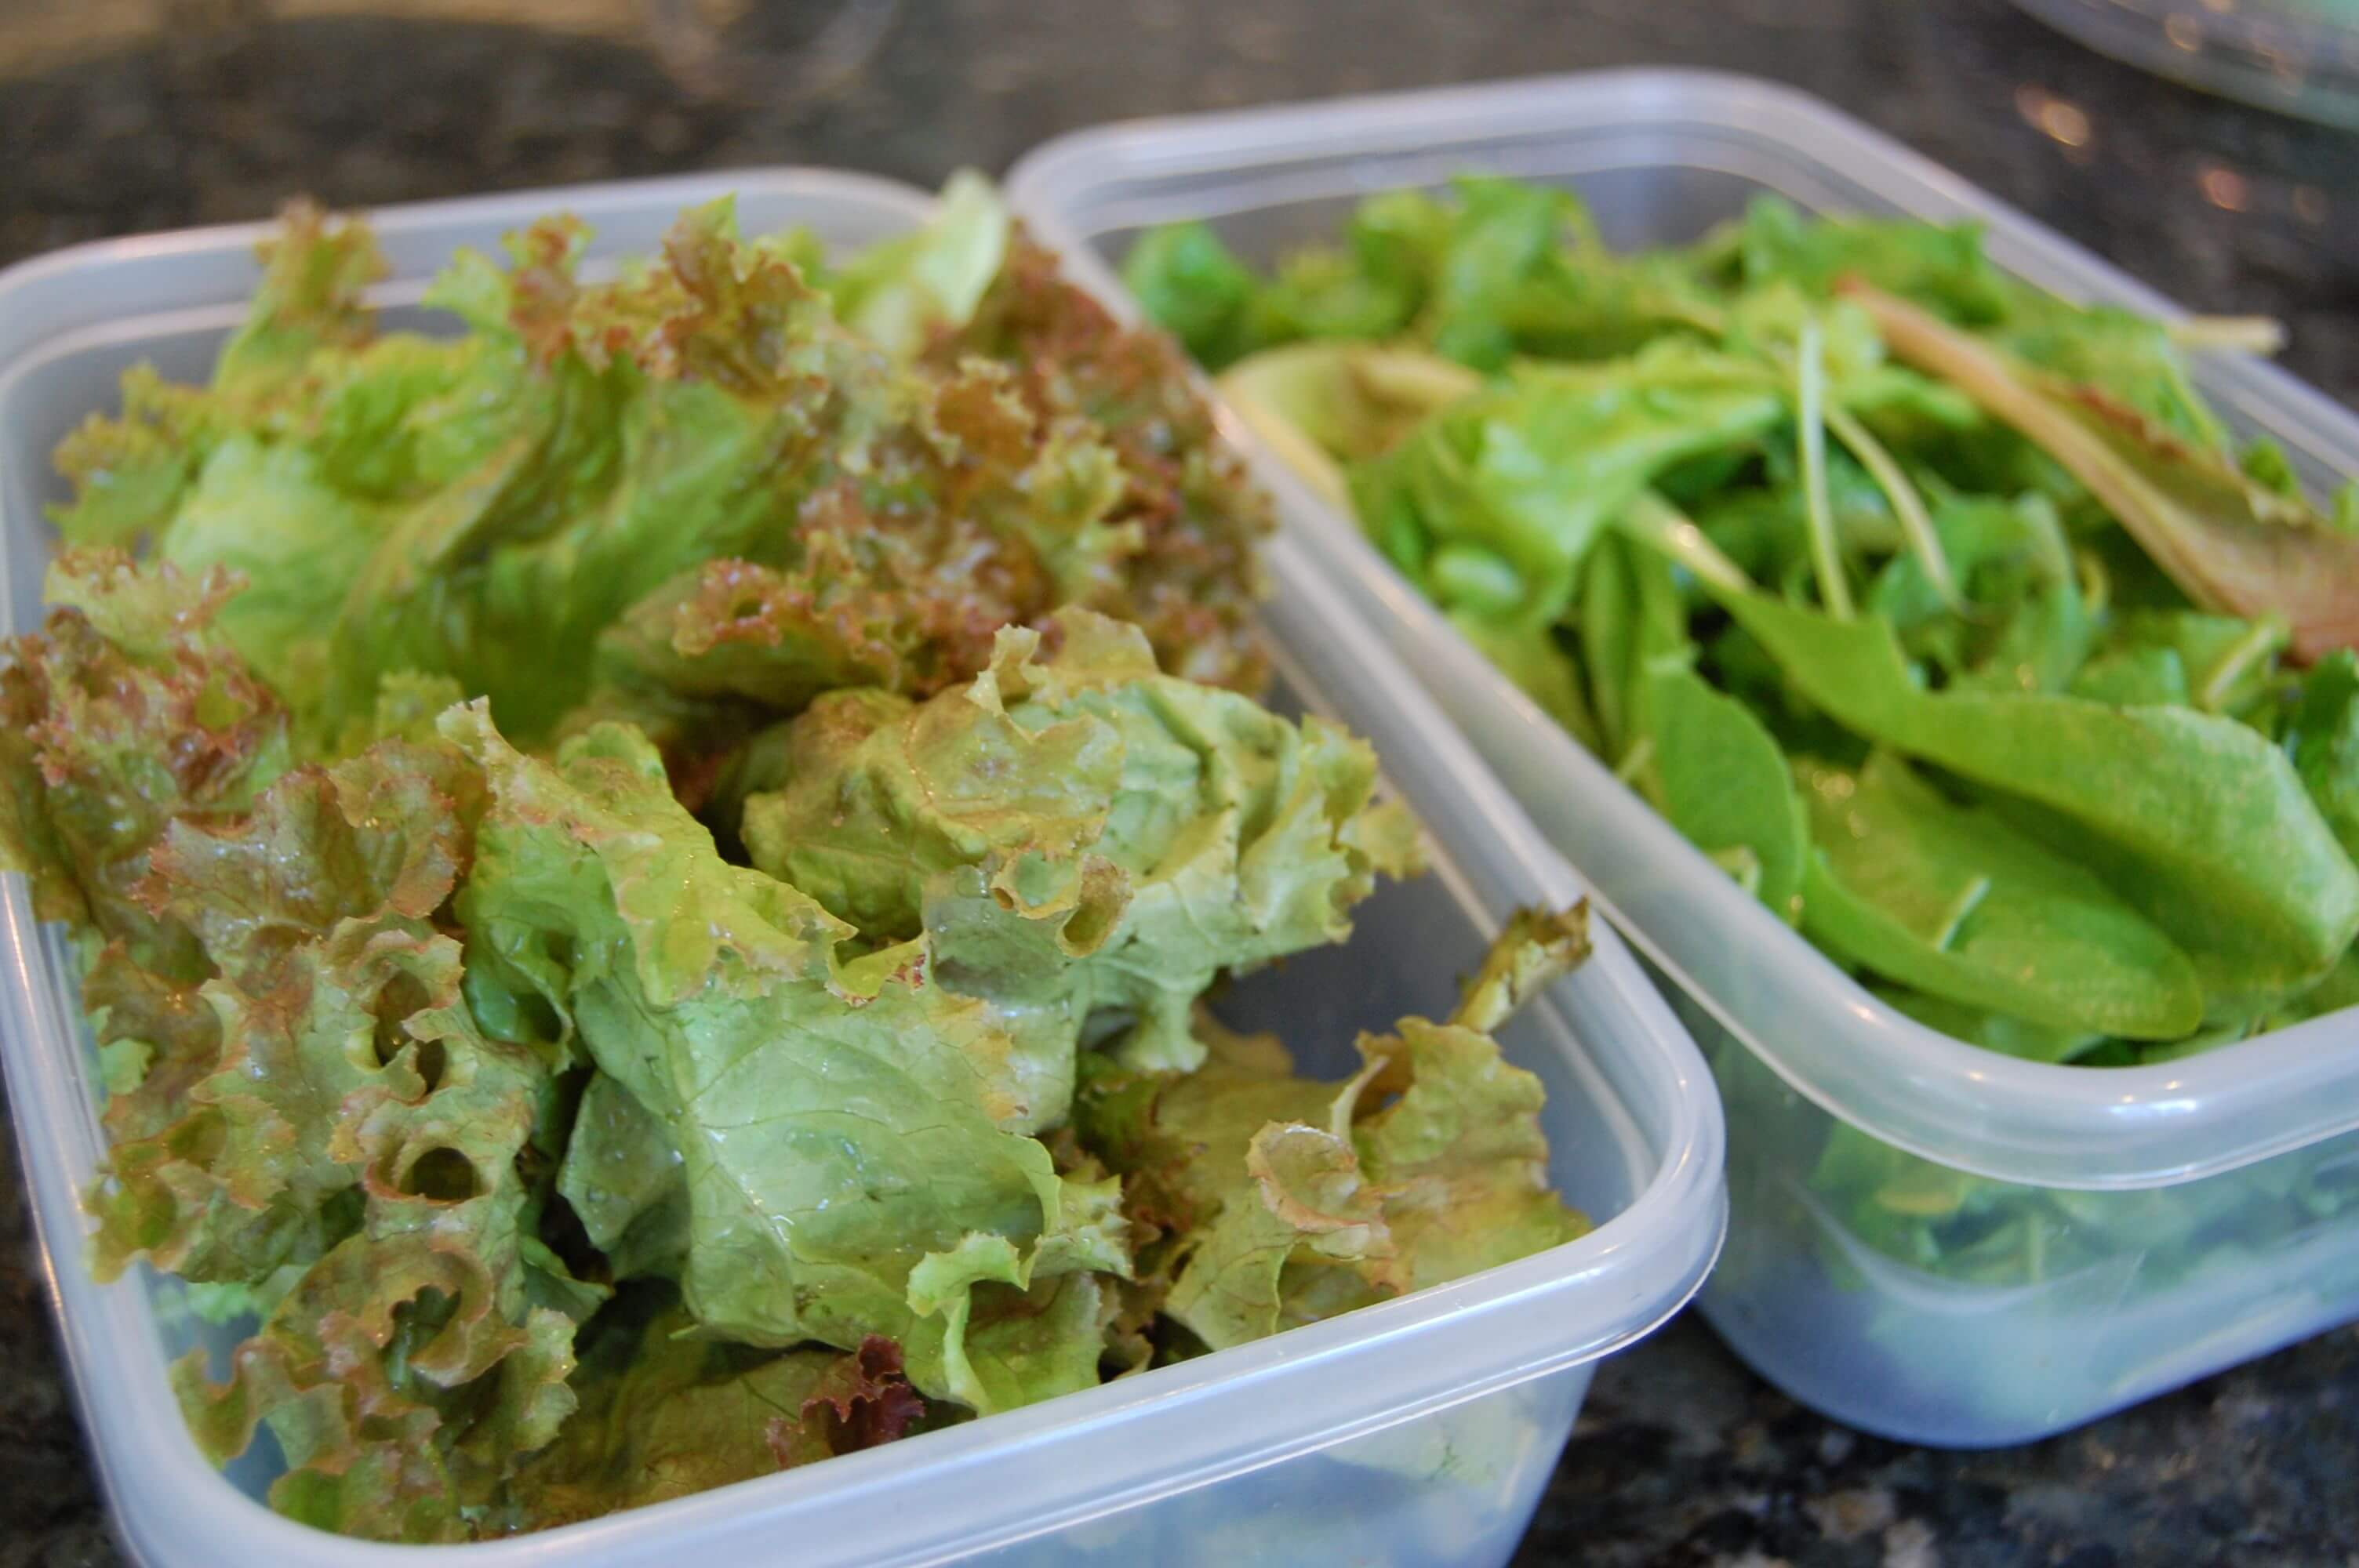 Two plastic containers with mixed greens on a counter.